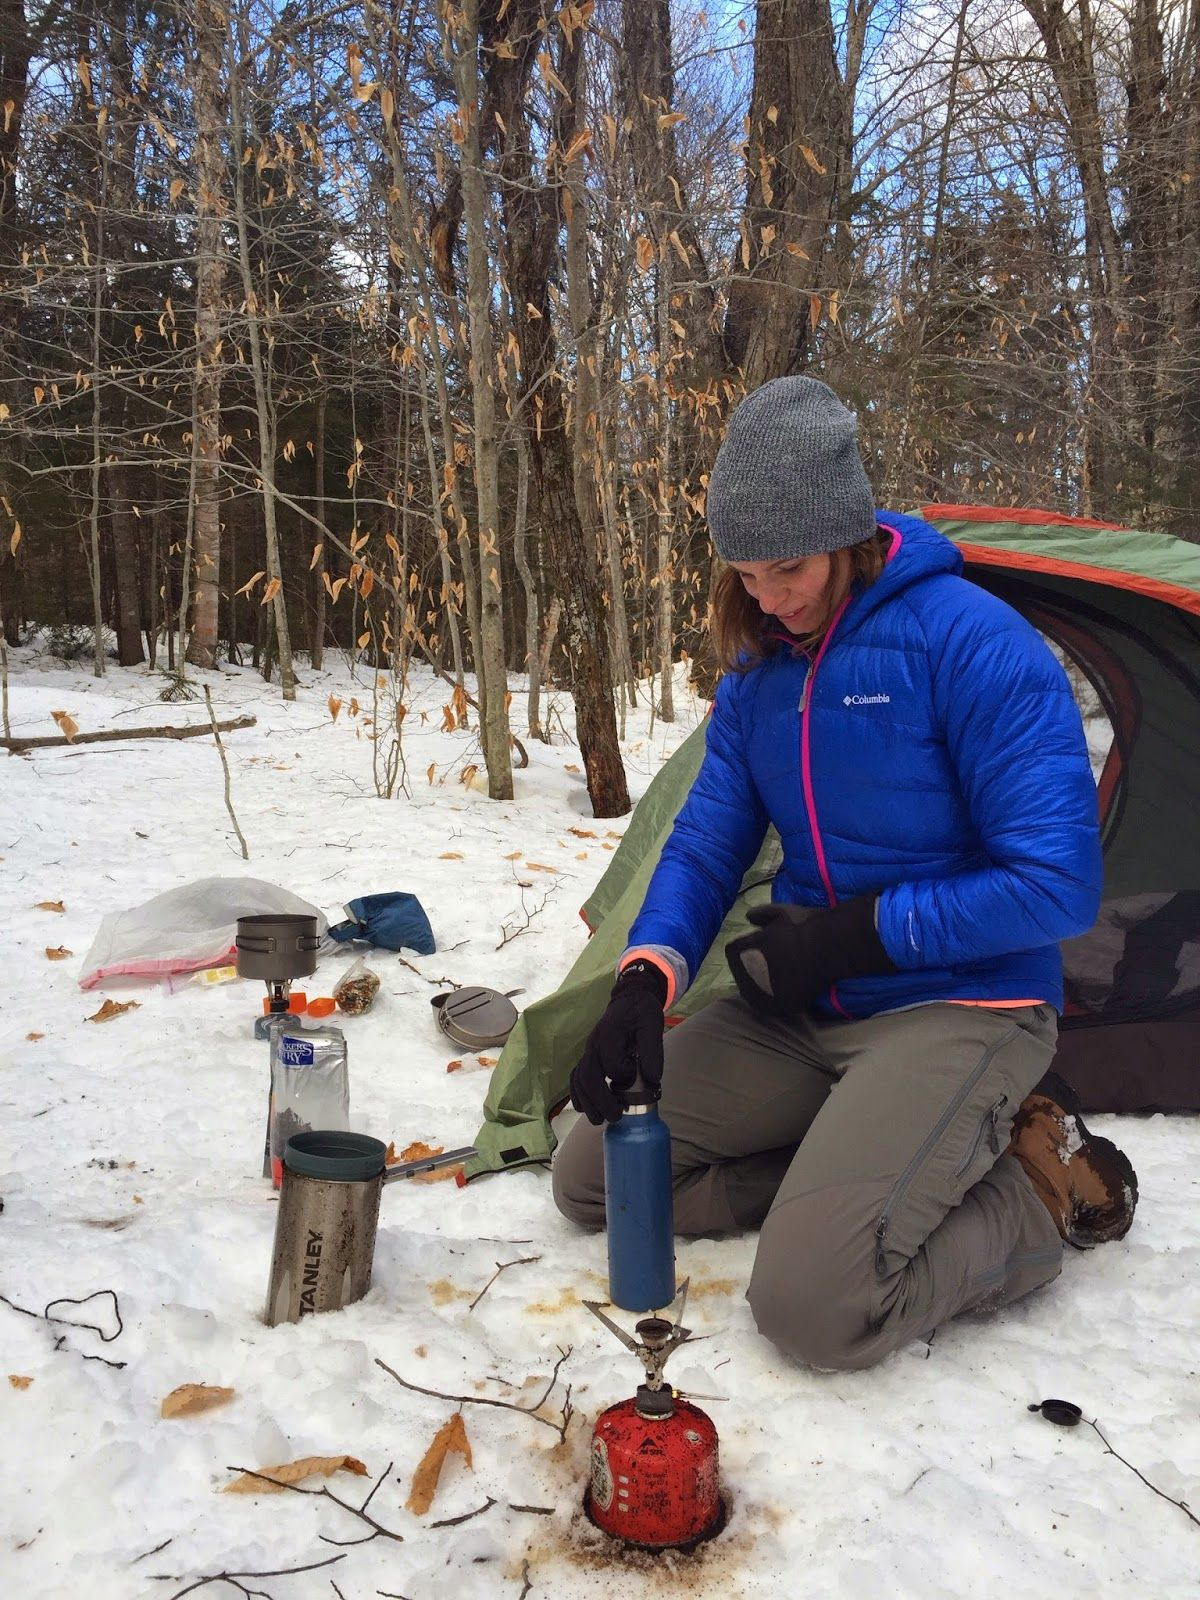 Winter backpacking is awesome bugs are nowhere to be found the